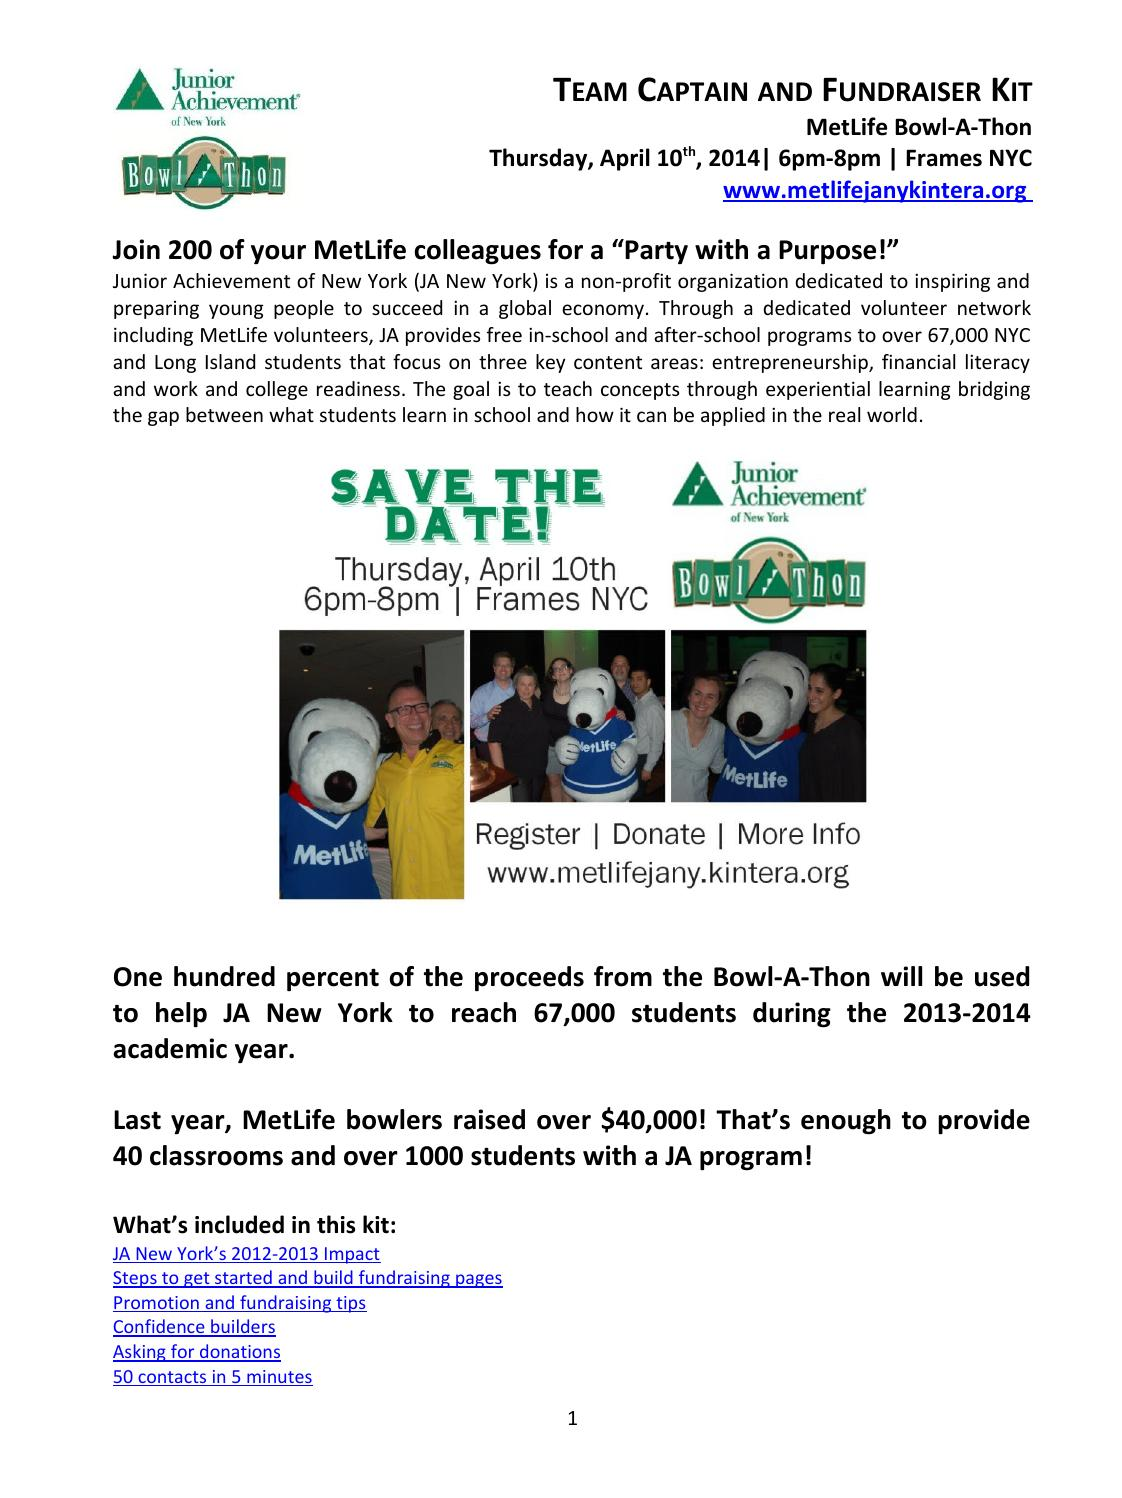 MetLife Fundraising Kit by Junior Achievement of NY - issuu